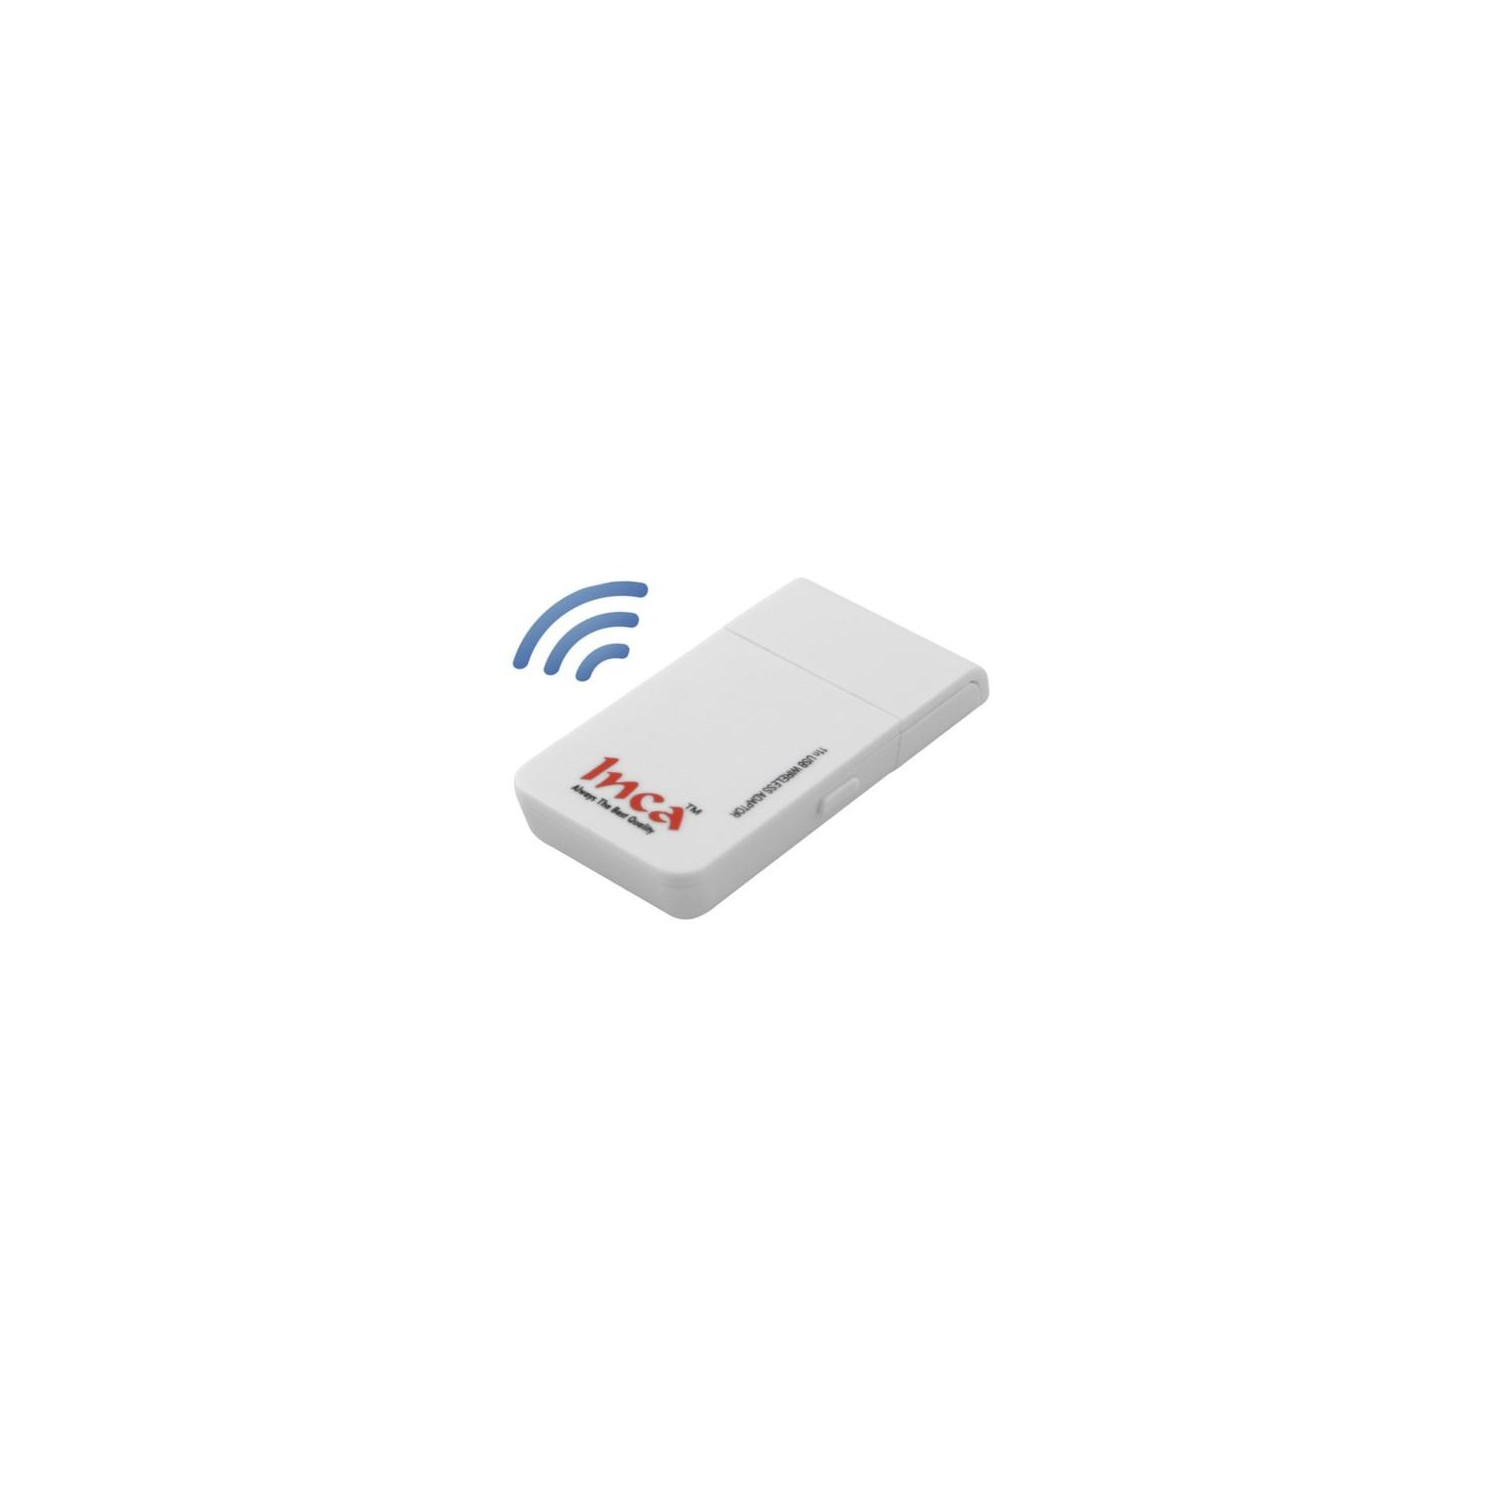 INCA WIRELESS ADAPTR IUDS-300 DRIVER PC